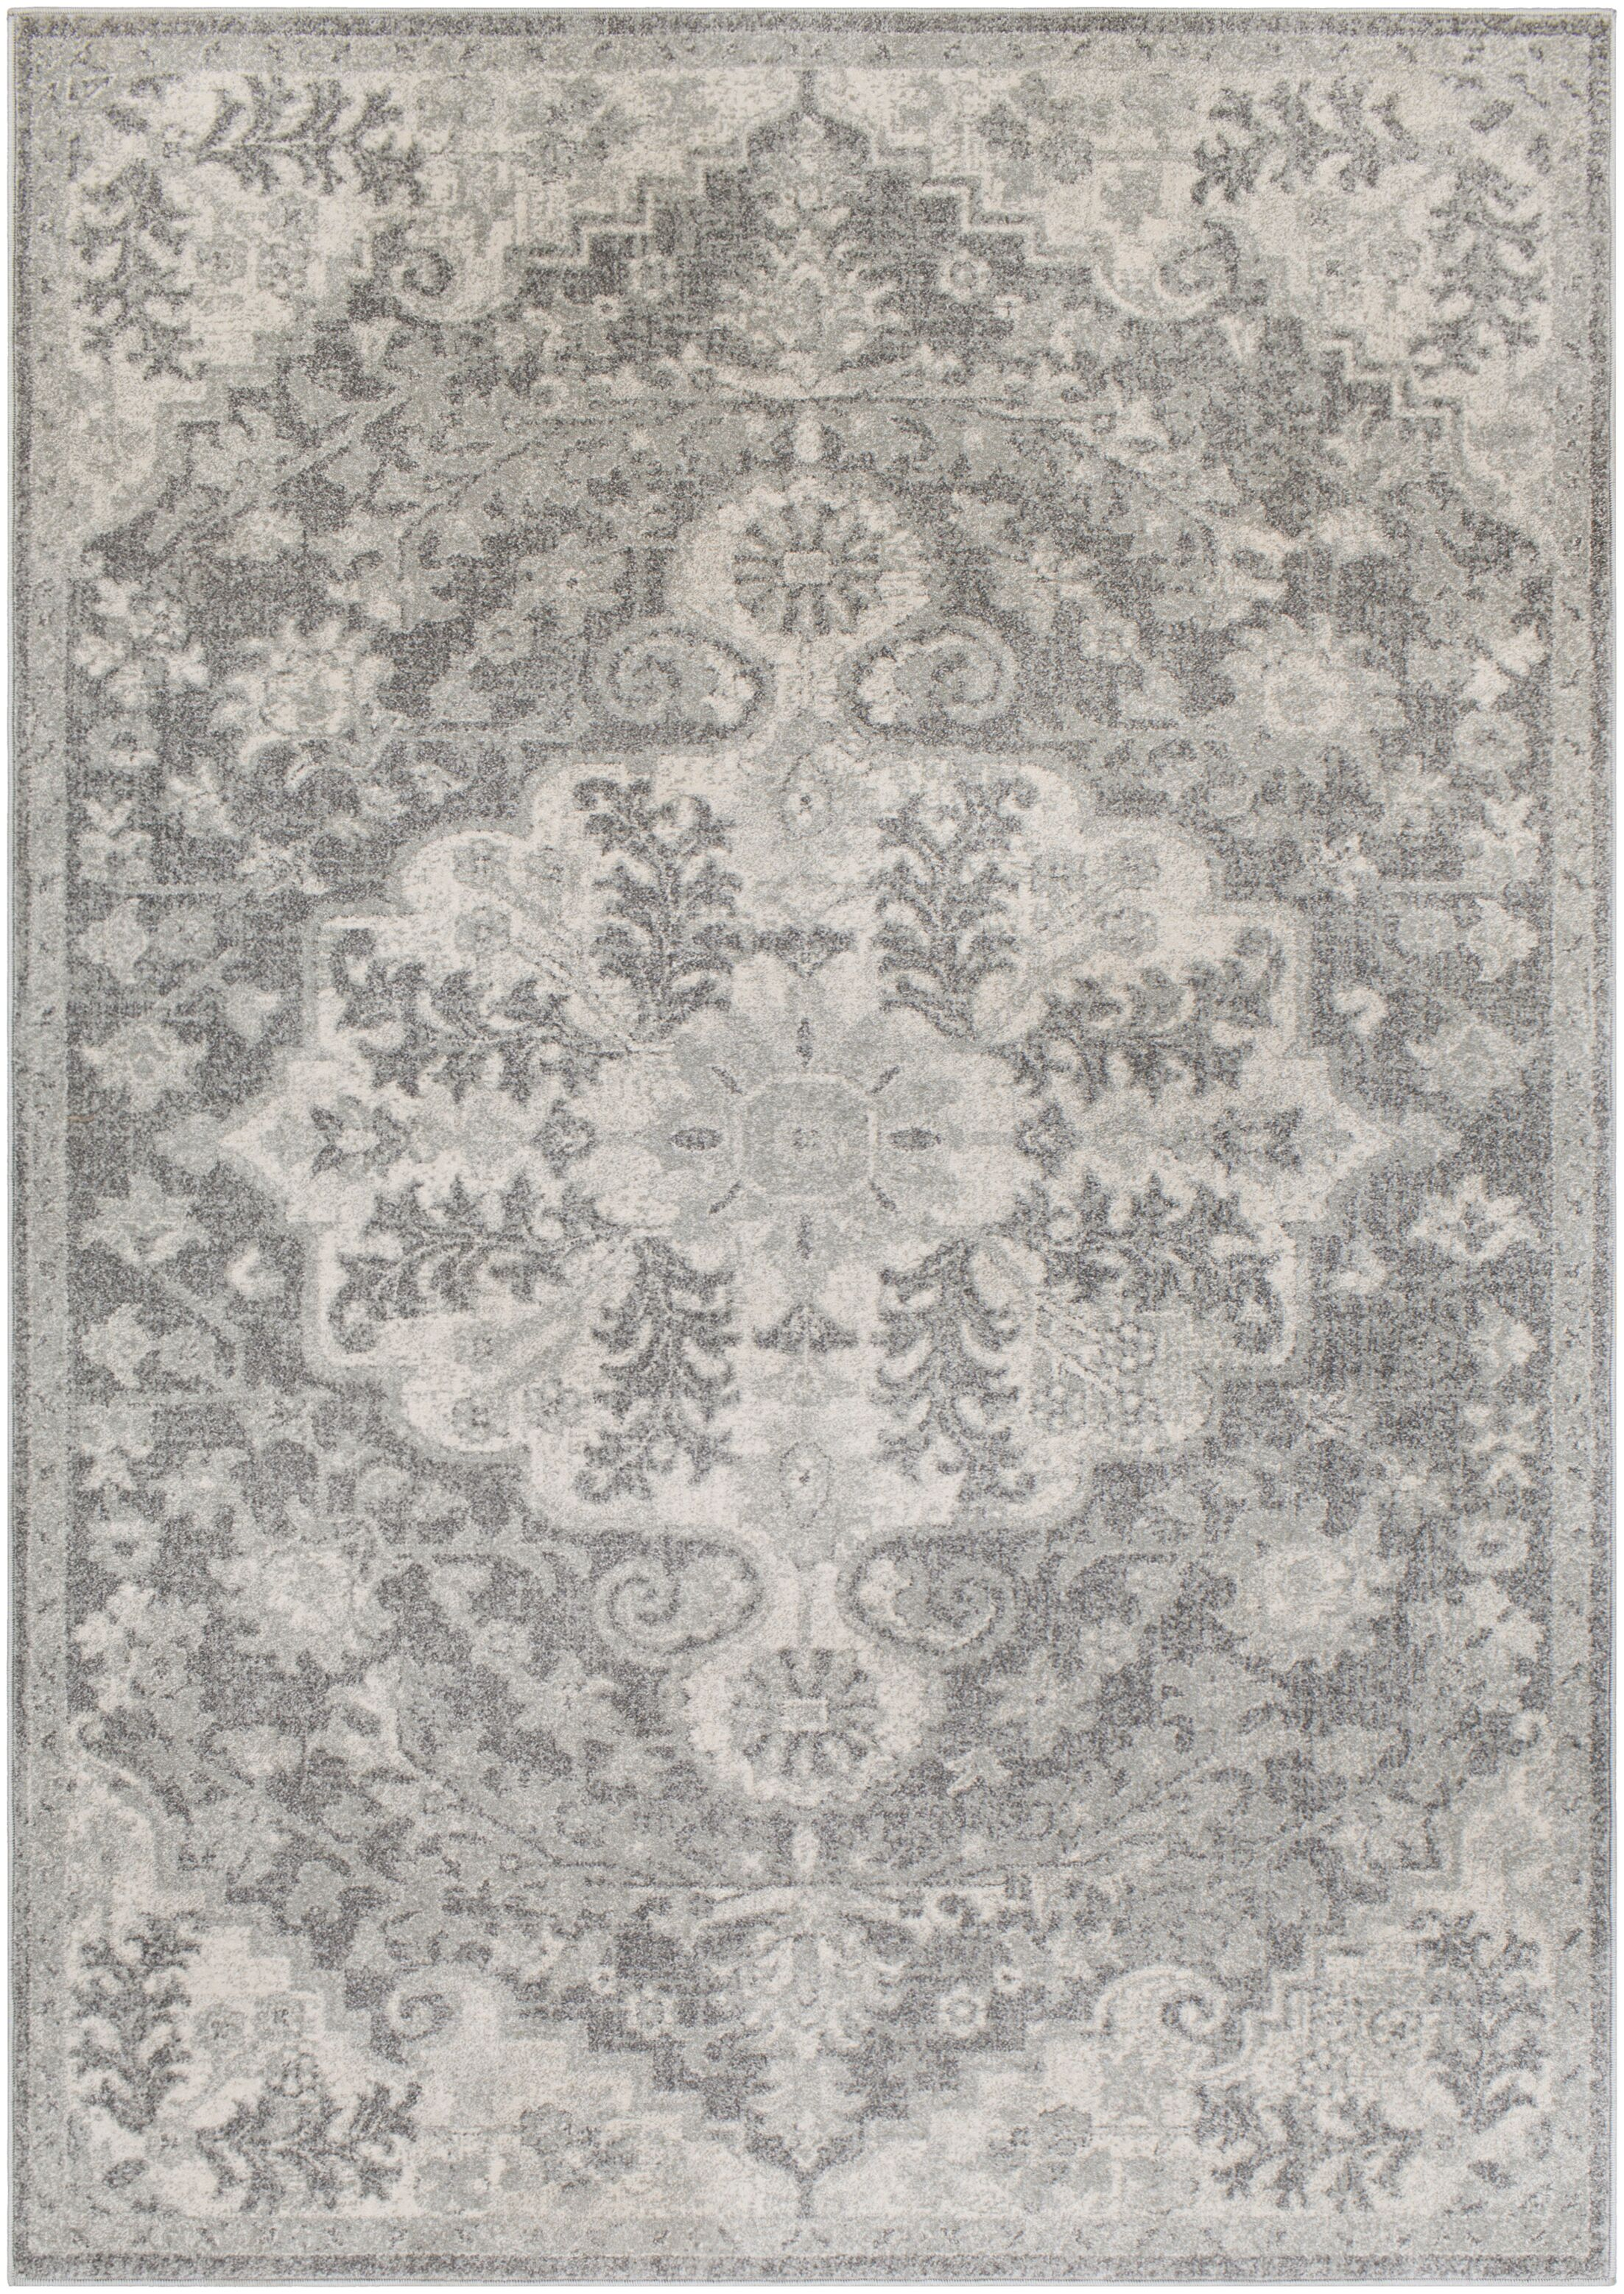 Hillsby Vintage Beige/Charcoal Area Rug Rug Size: Rectangle 3'11